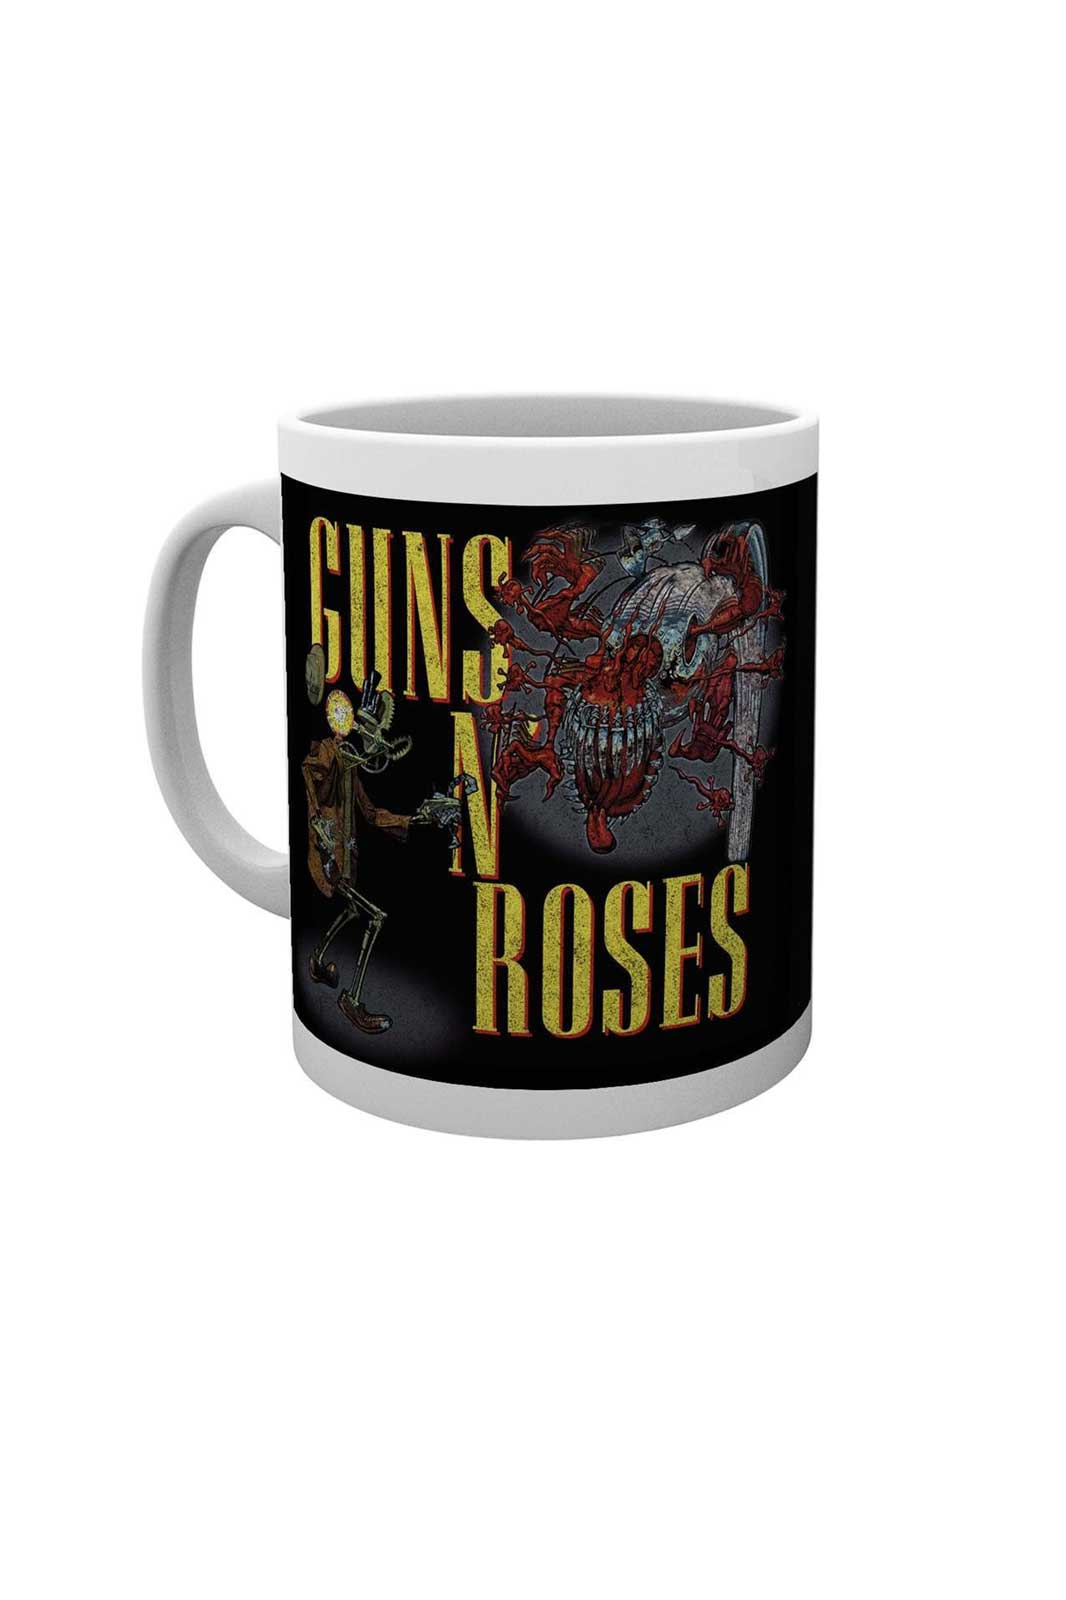 Guns'n'roses Attak Mug